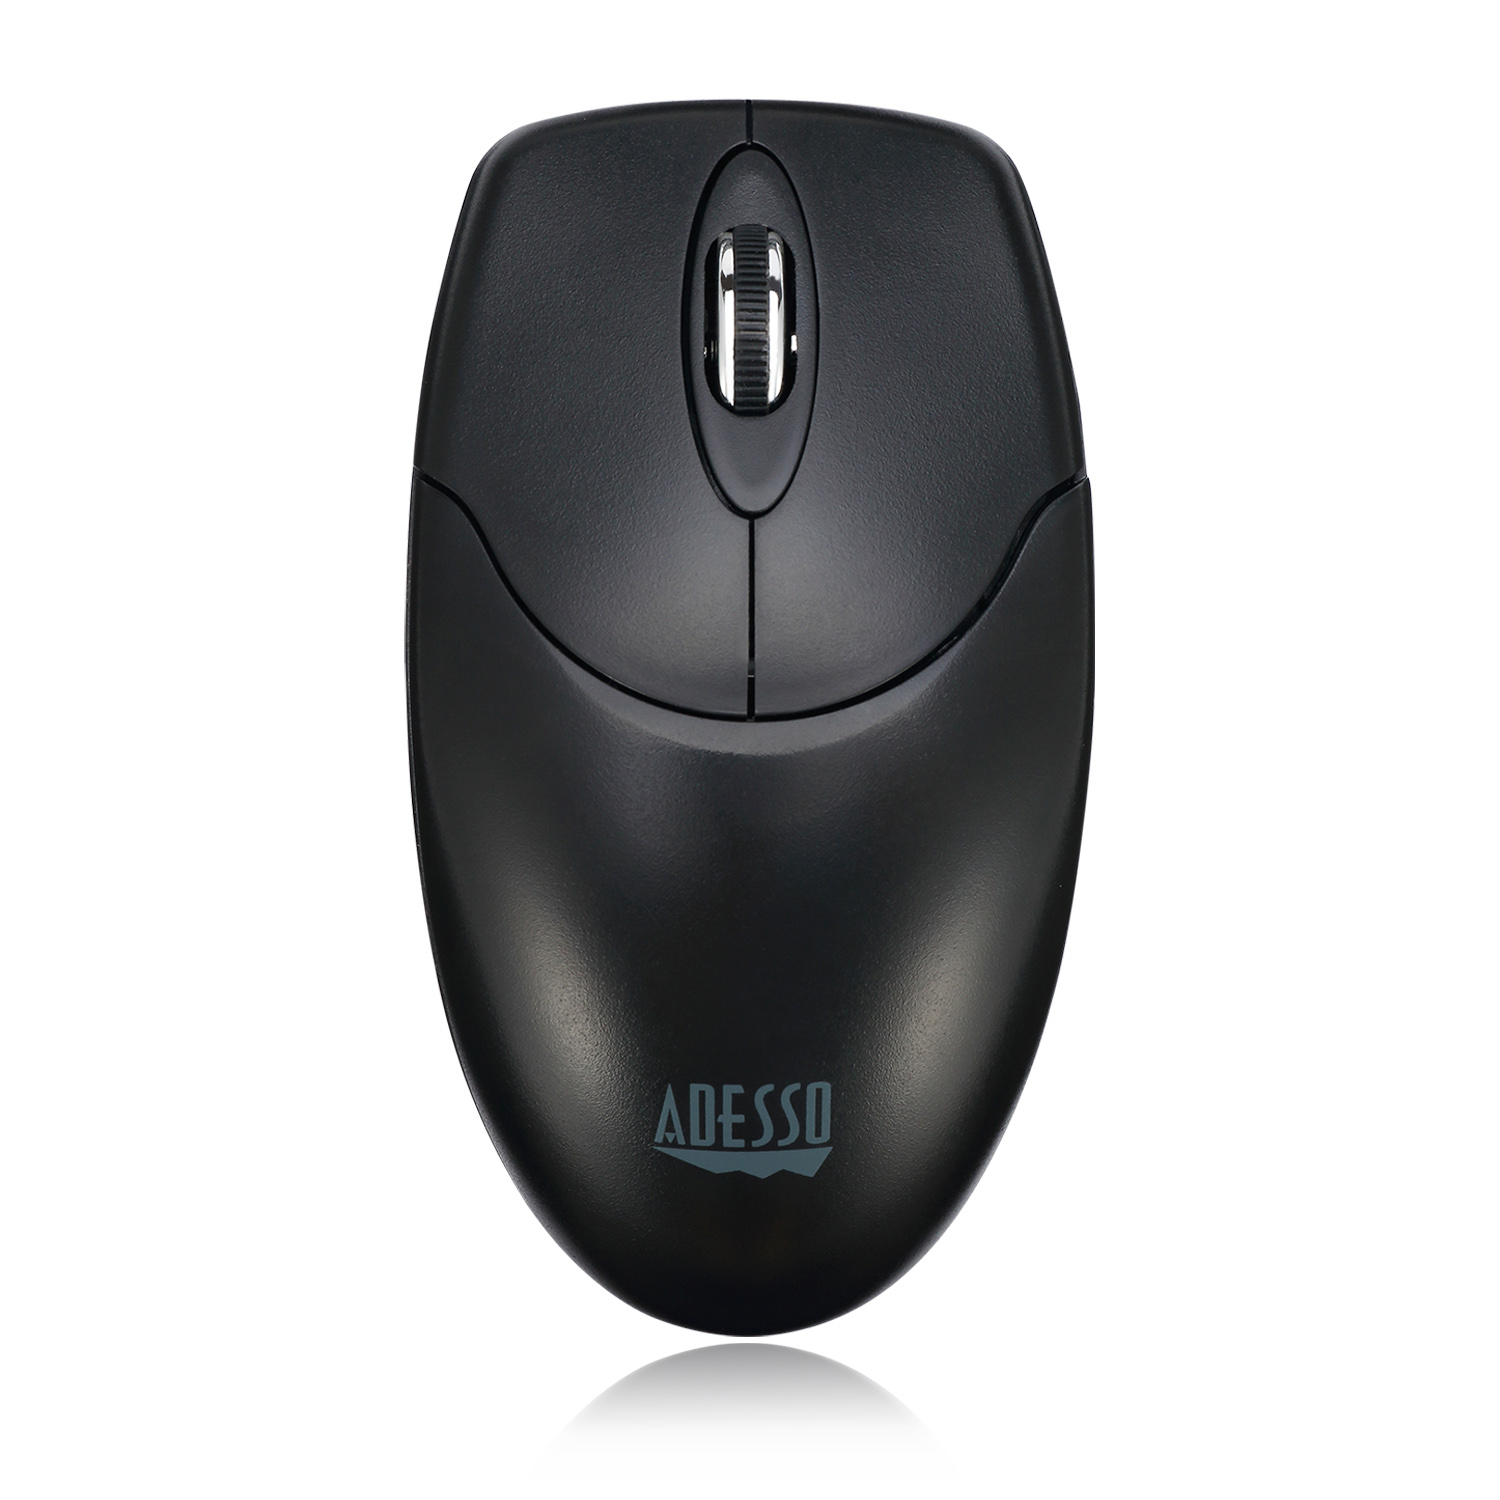 Wkb 1330cb 24 Ghz Wireless Desktop Keyboard And Mouse Combo Optical Micro Power Usb 24ghz Plug Play Adesso Inc Your Input Device Specialist